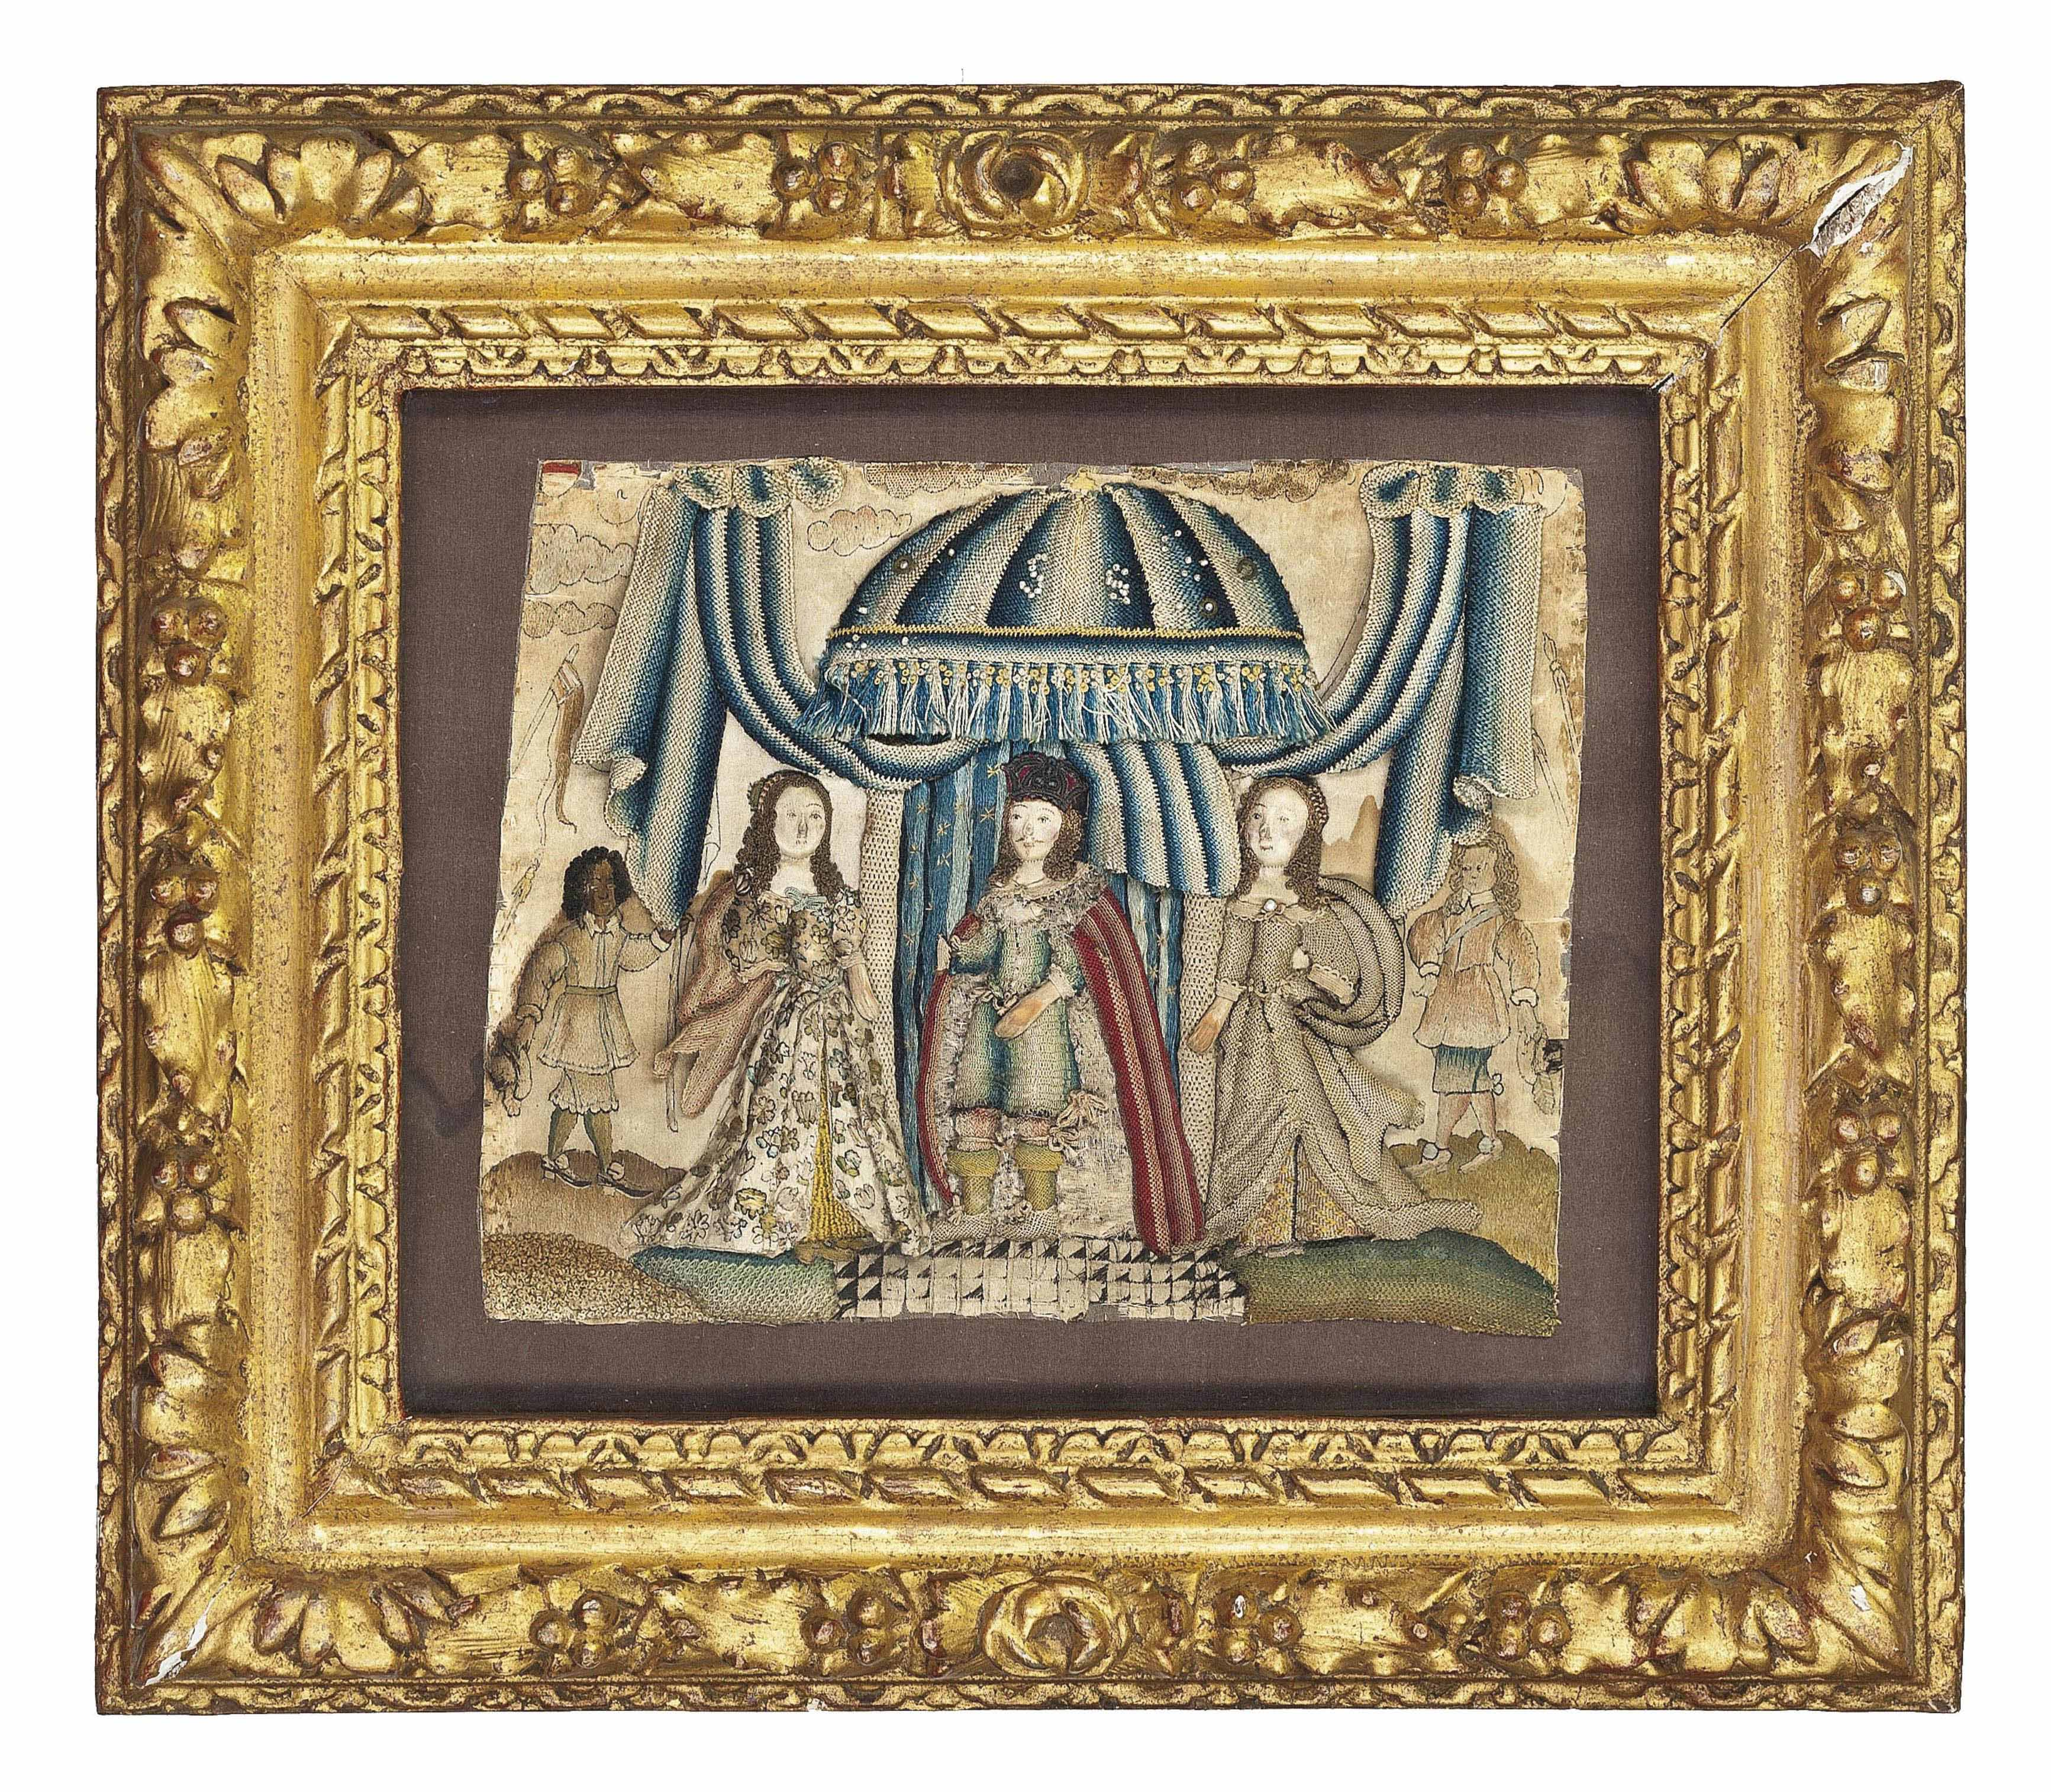 A RAISEDWORK PICTURE DEPICTING A KING IN A TENTED CANOPY